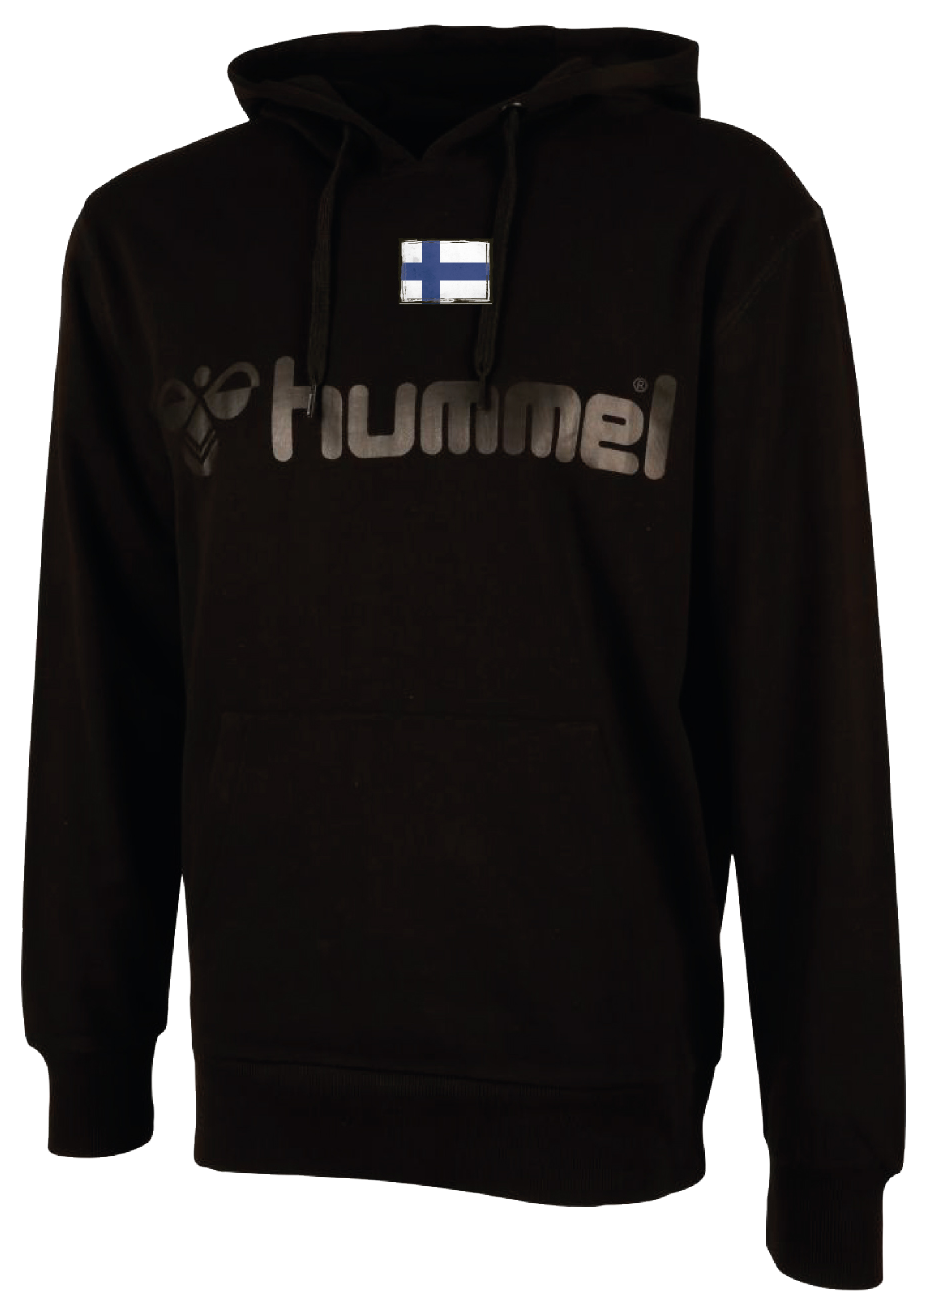 Hoodie front FIN